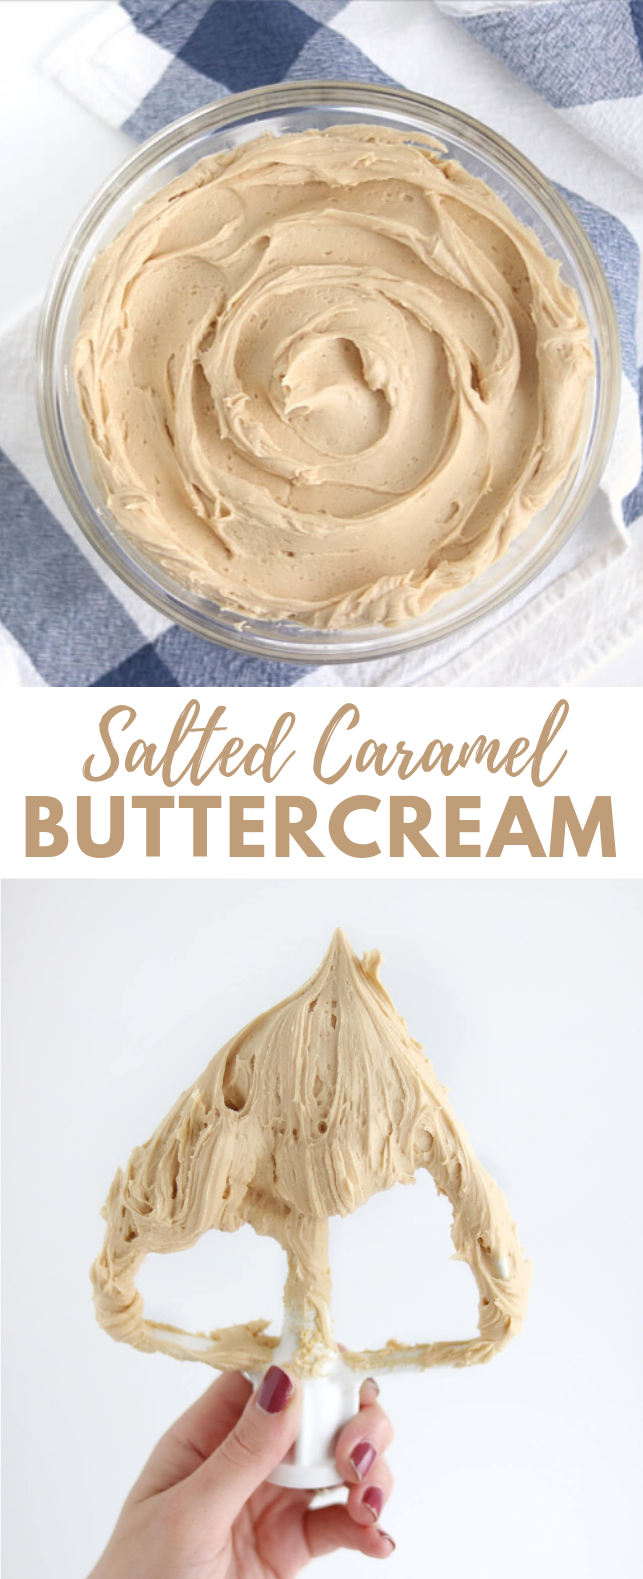 Salted Caramel Buttercream Recipe #dessert #cake